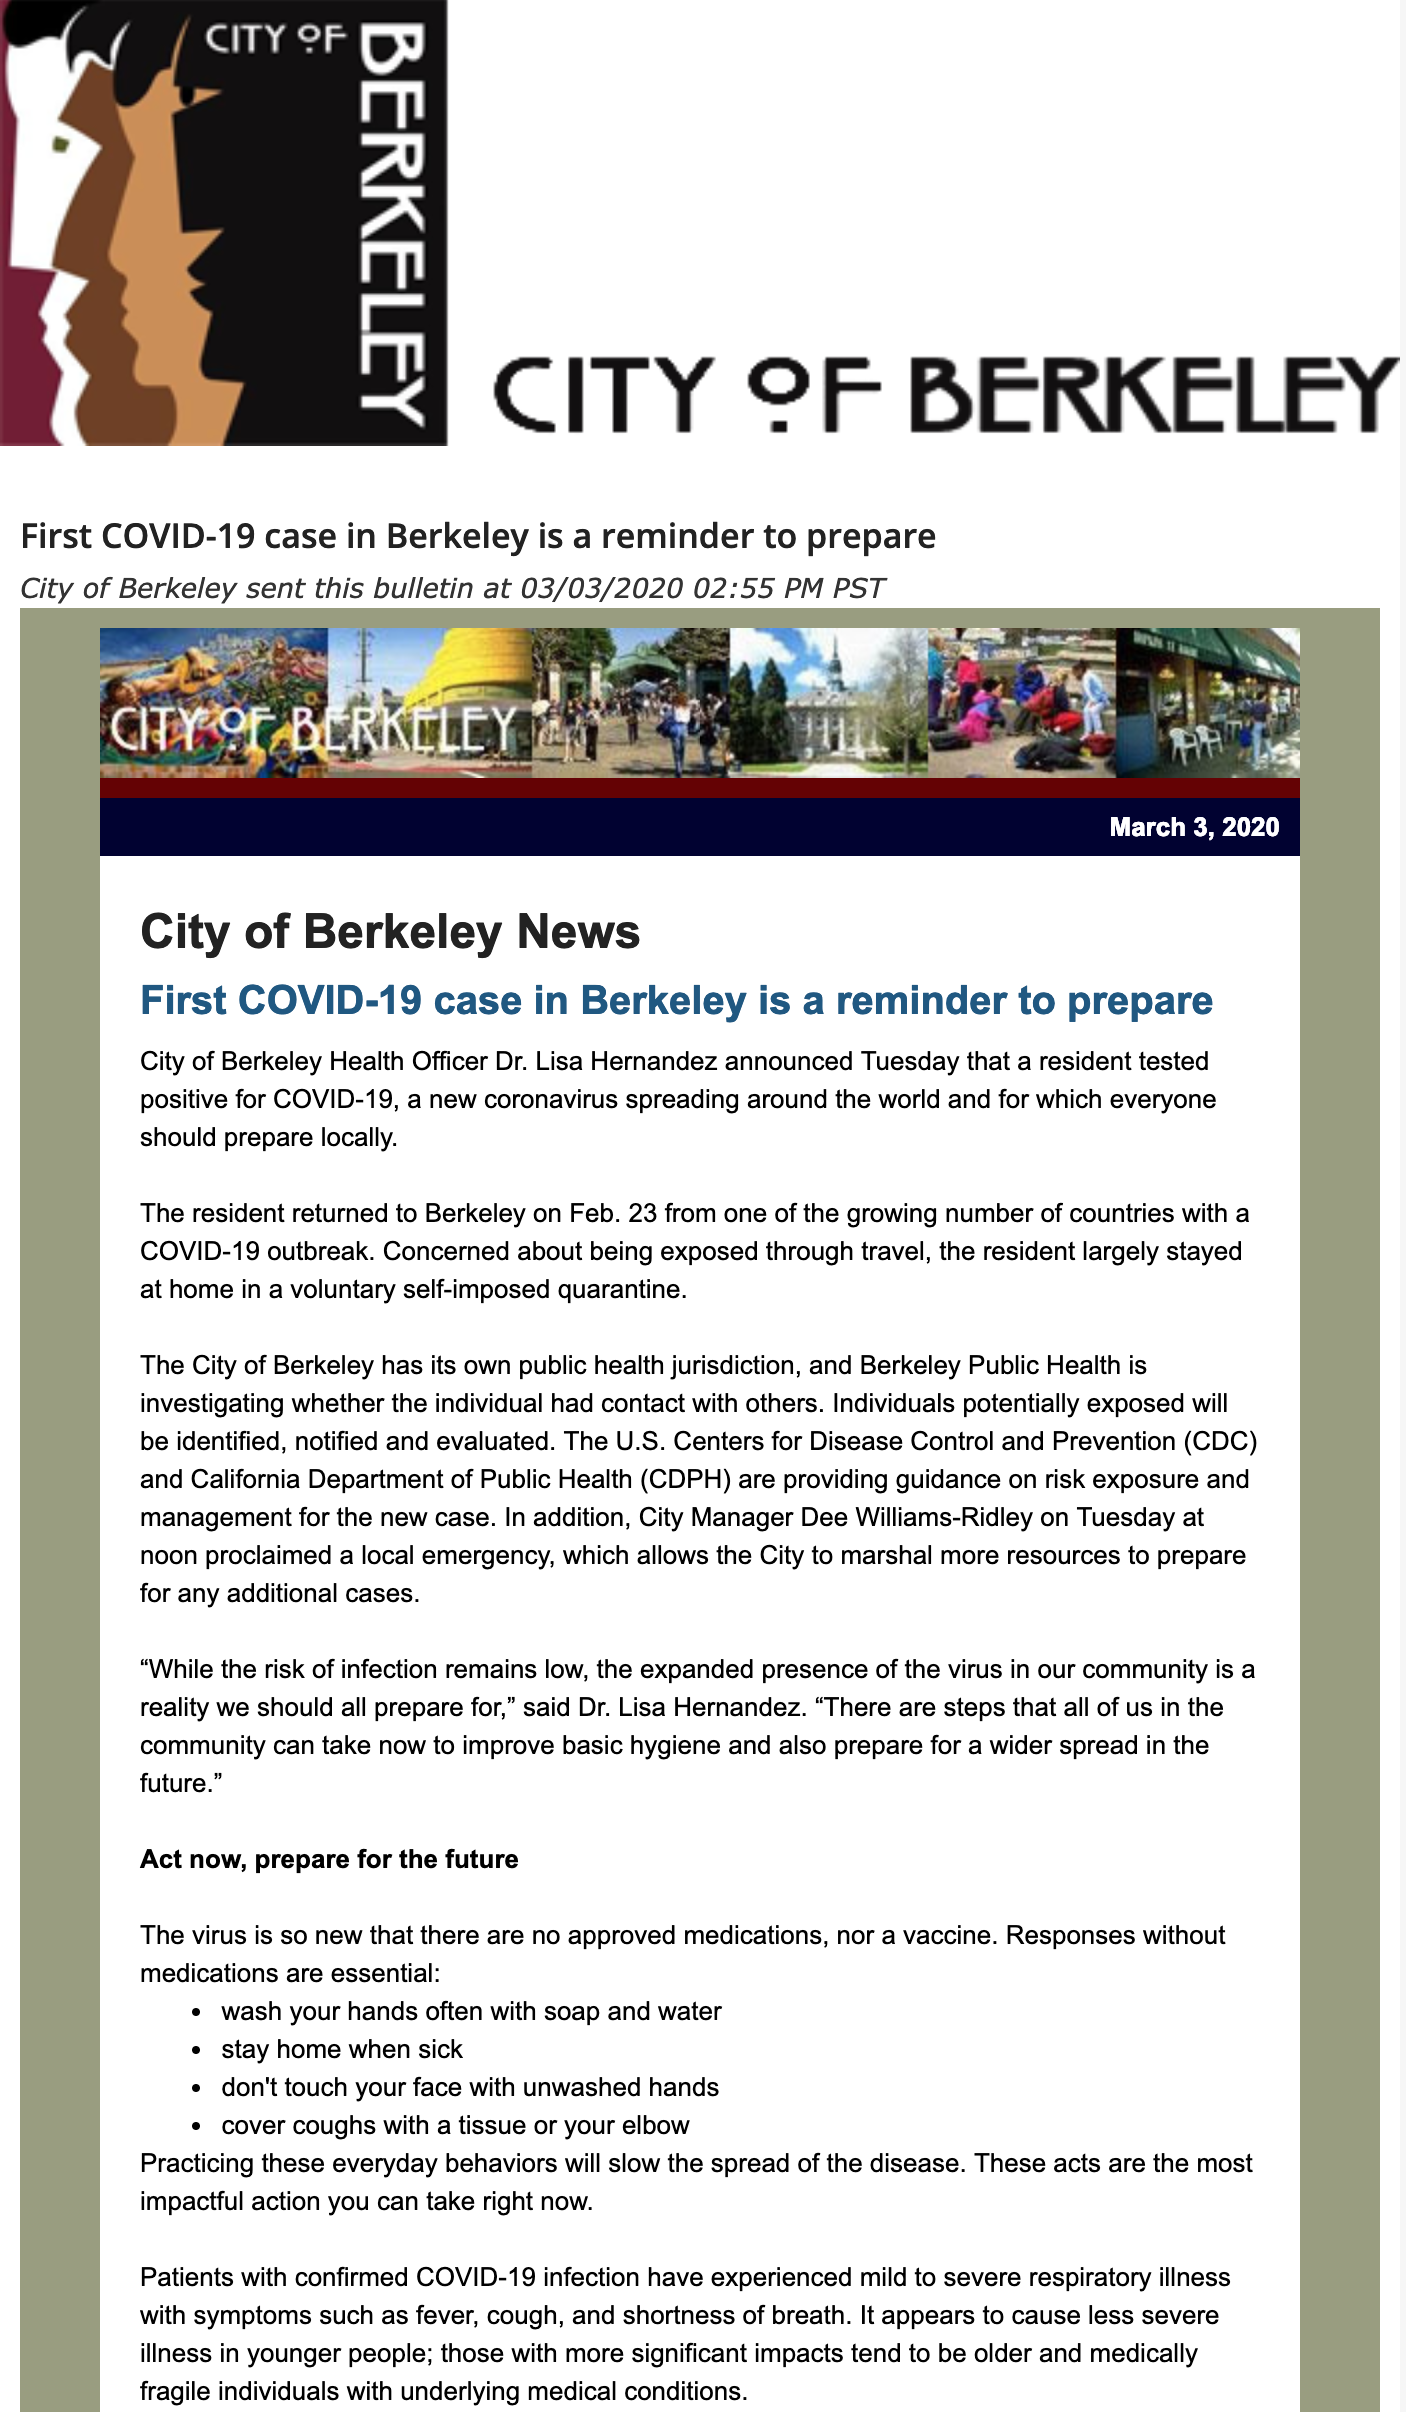 screenshot of email bulletin sent by City of Berkeley